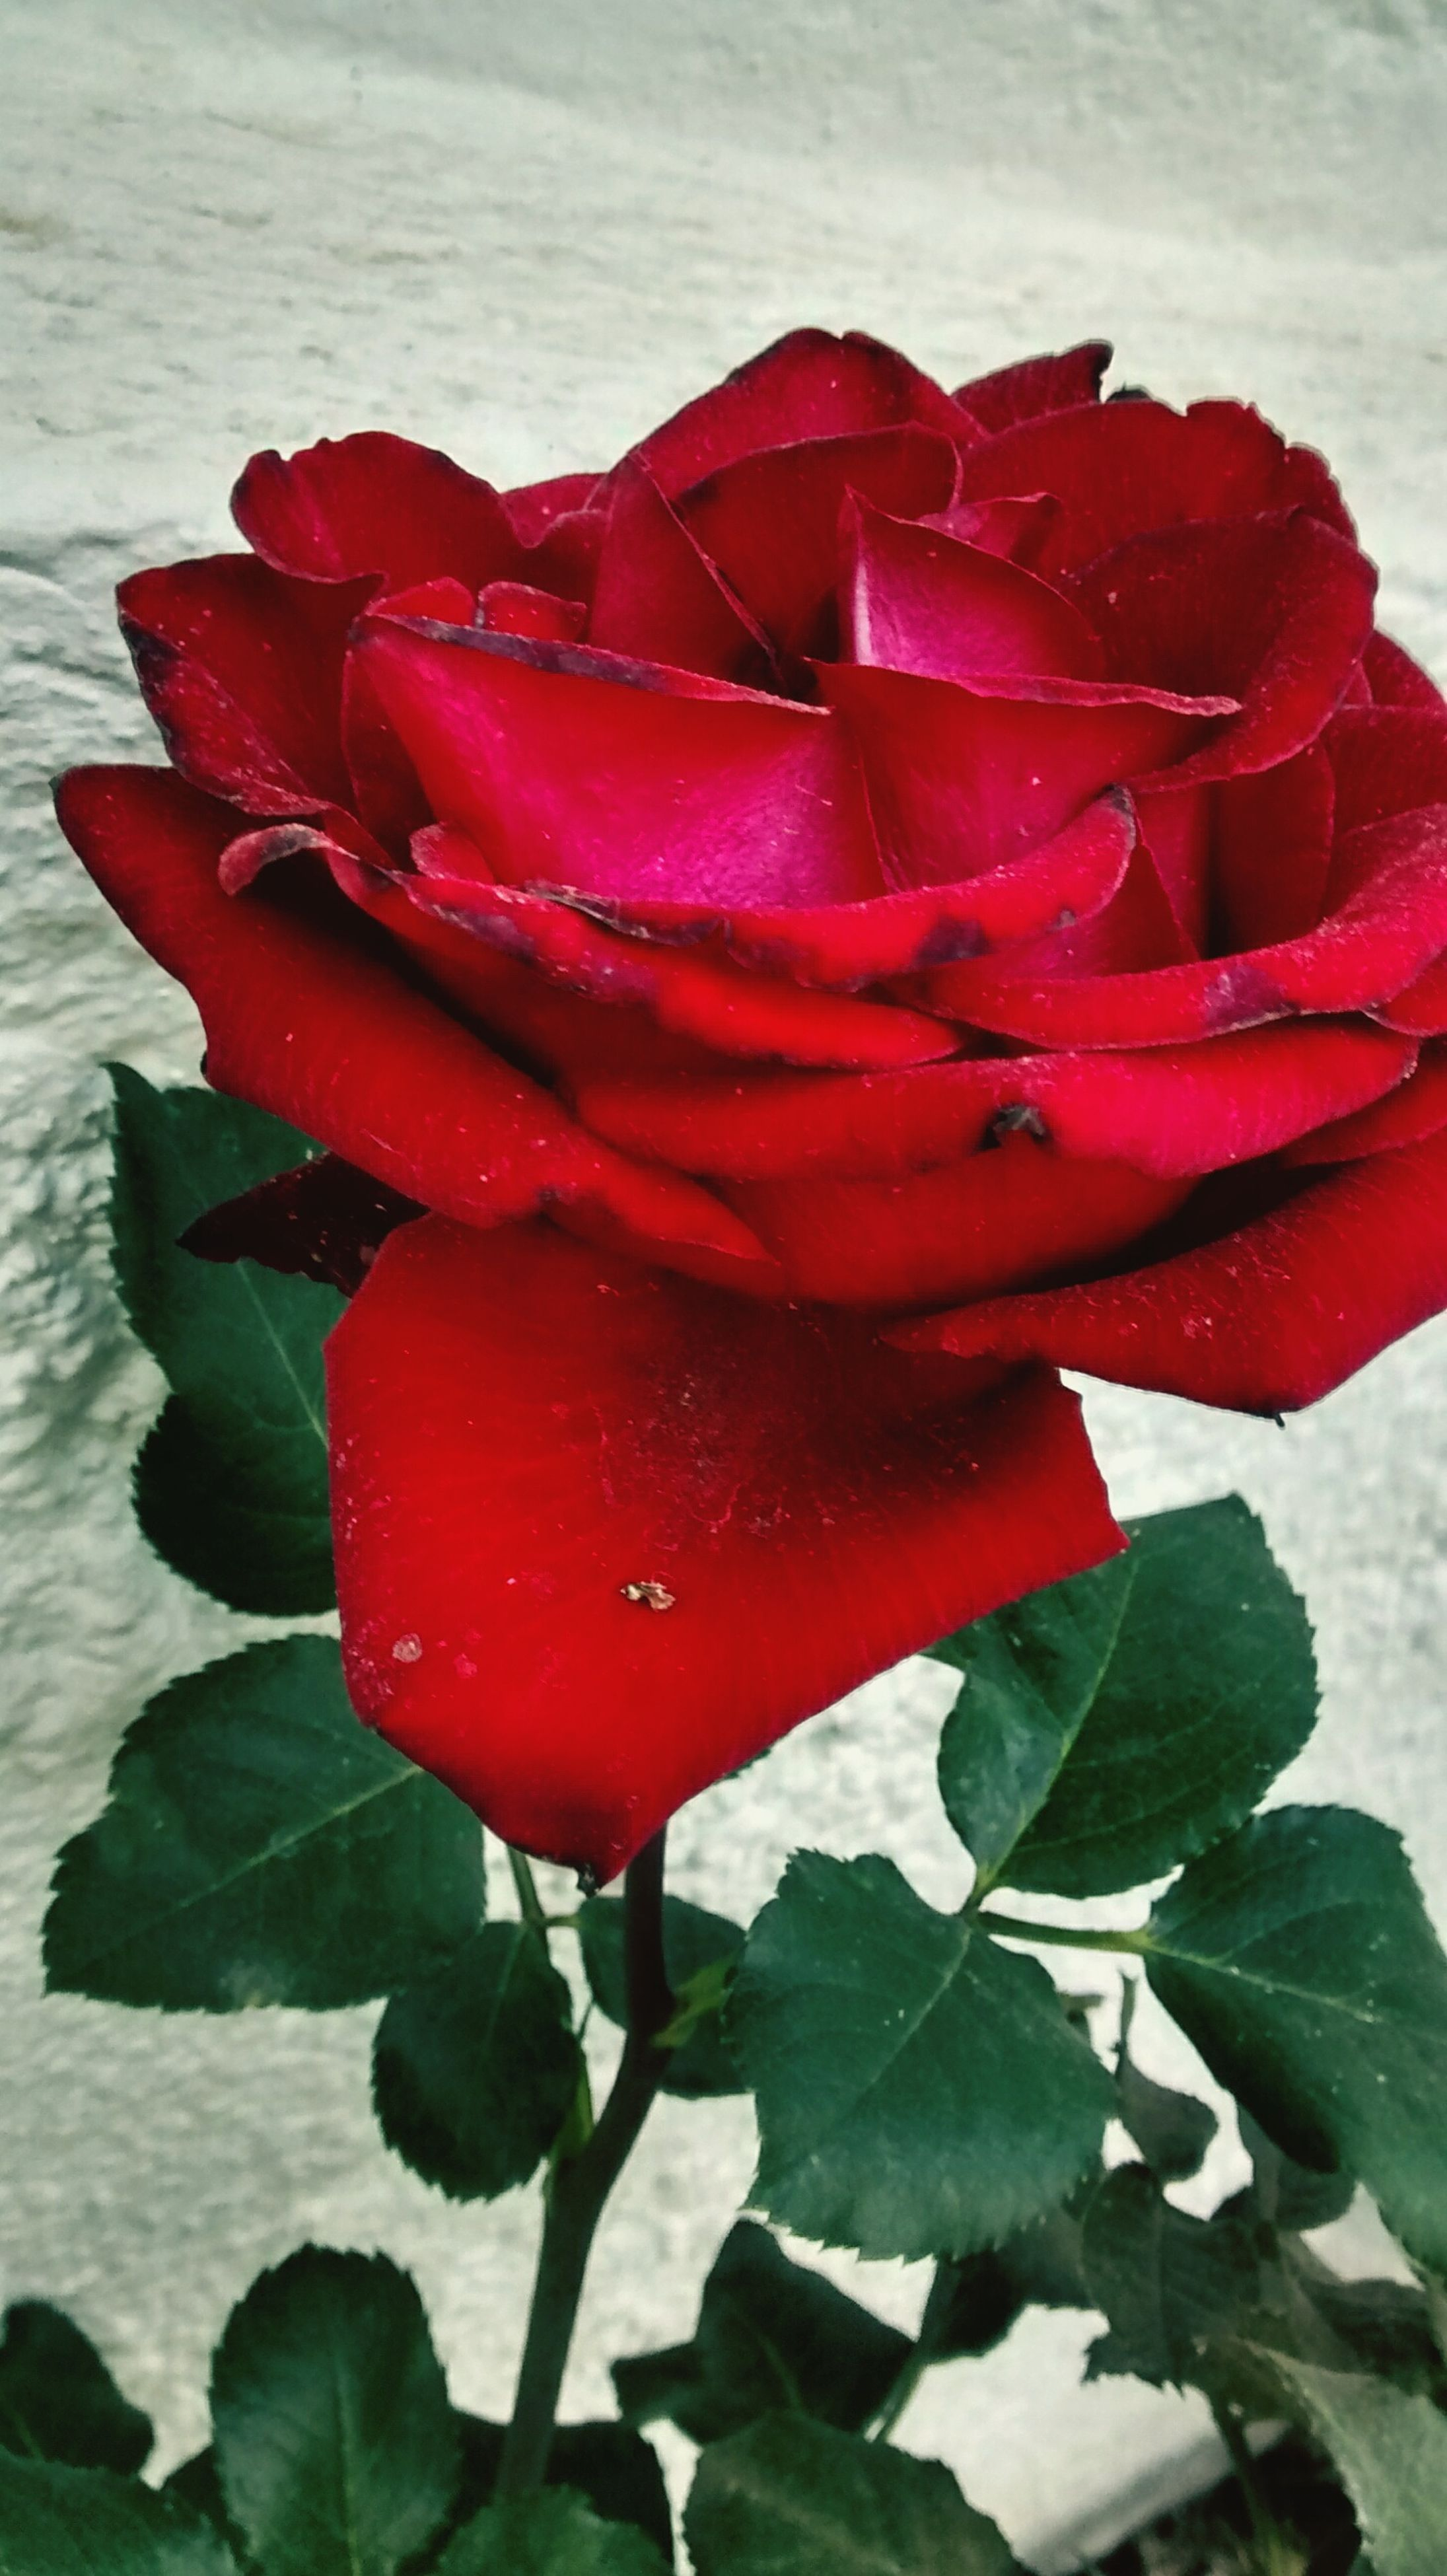 red, freshness, flower, petal, flower head, fragility, close-up, beauty in nature, growth, single flower, water, drop, rose - flower, leaf, wet, plant, nature, blooming, focus on foreground, high angle view